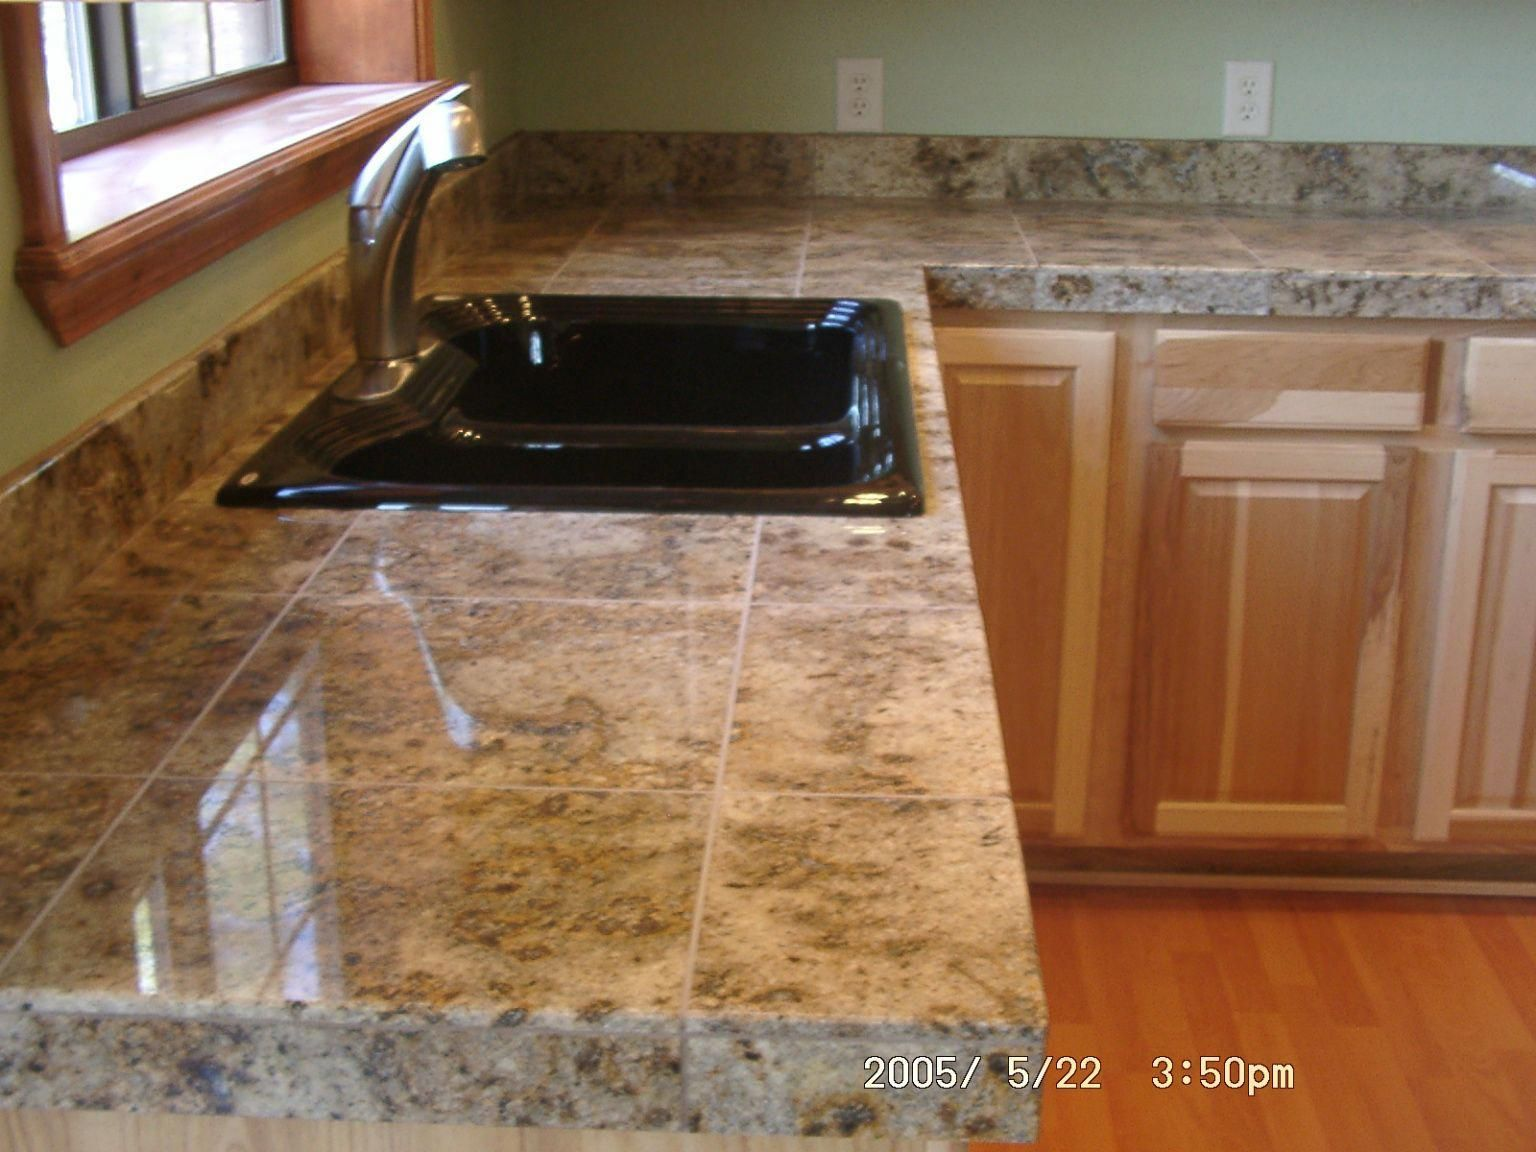 Counter Kitchen Tiles Countertops Tops Discover More Details On Outdoor Kitchen Count Tile Countertops Kitchen Tile Countertops Kitchen Remodel Countertops